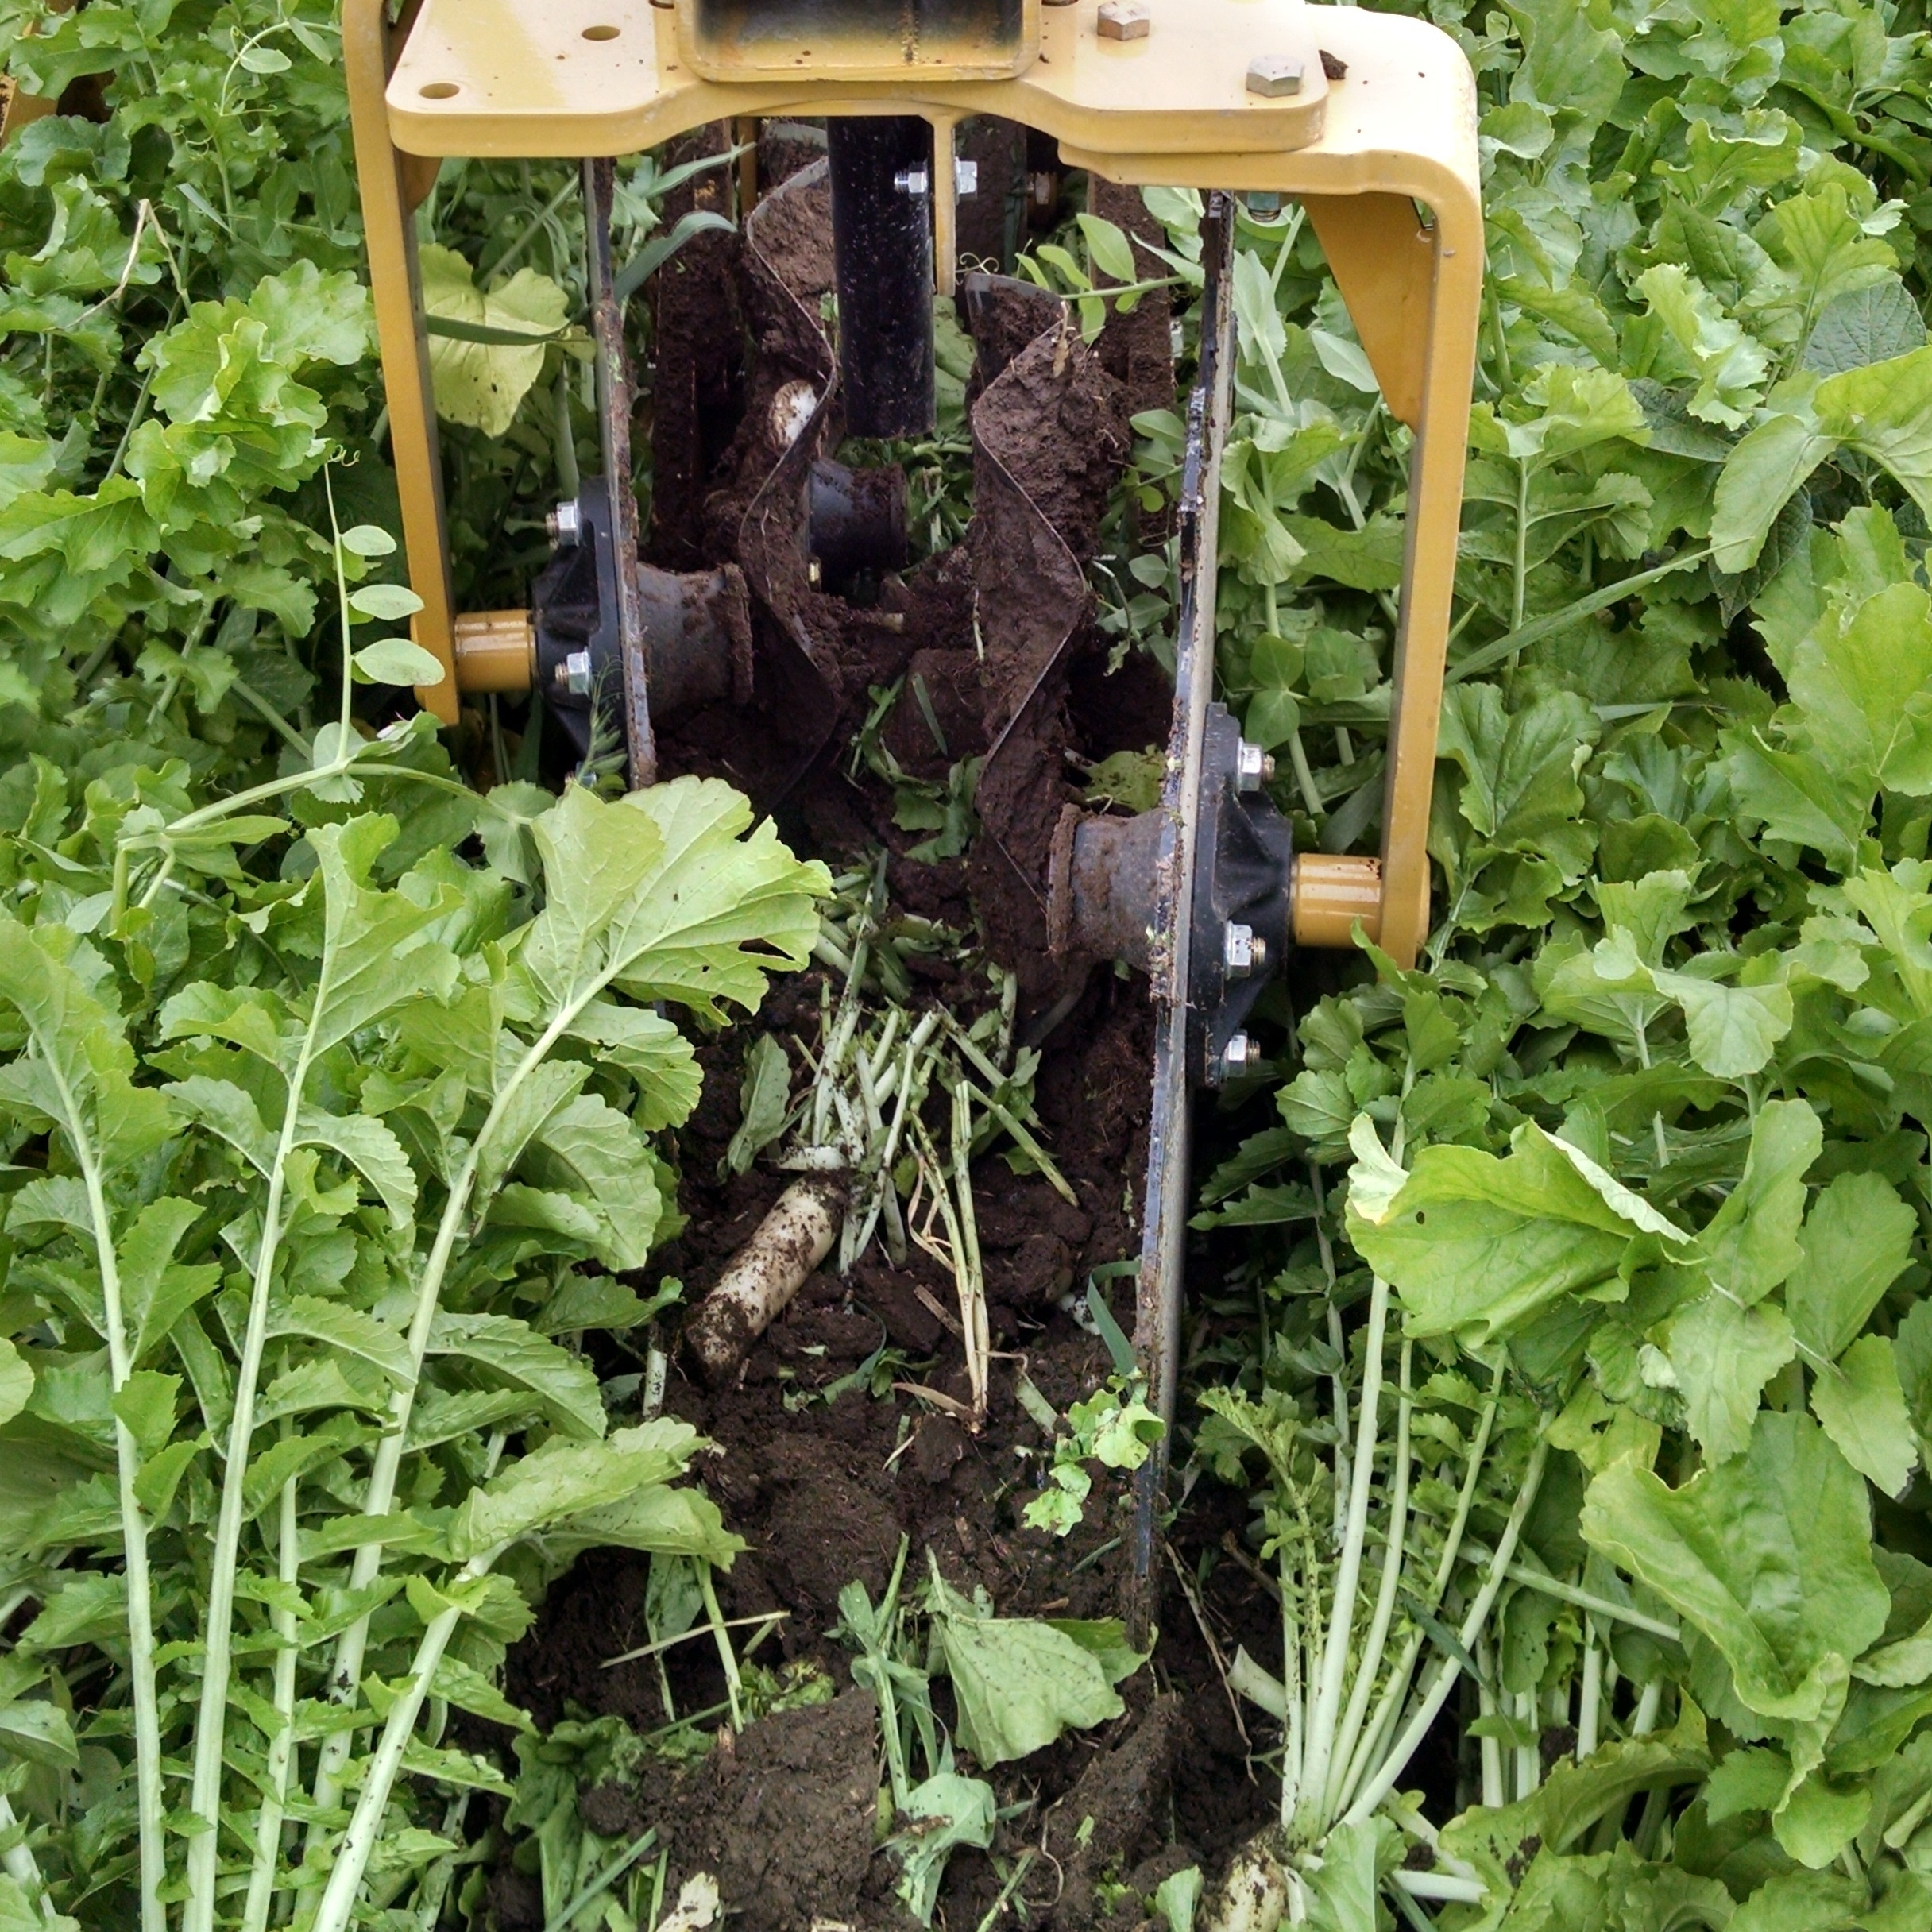 strip-till with SoilWarrior in cover crops